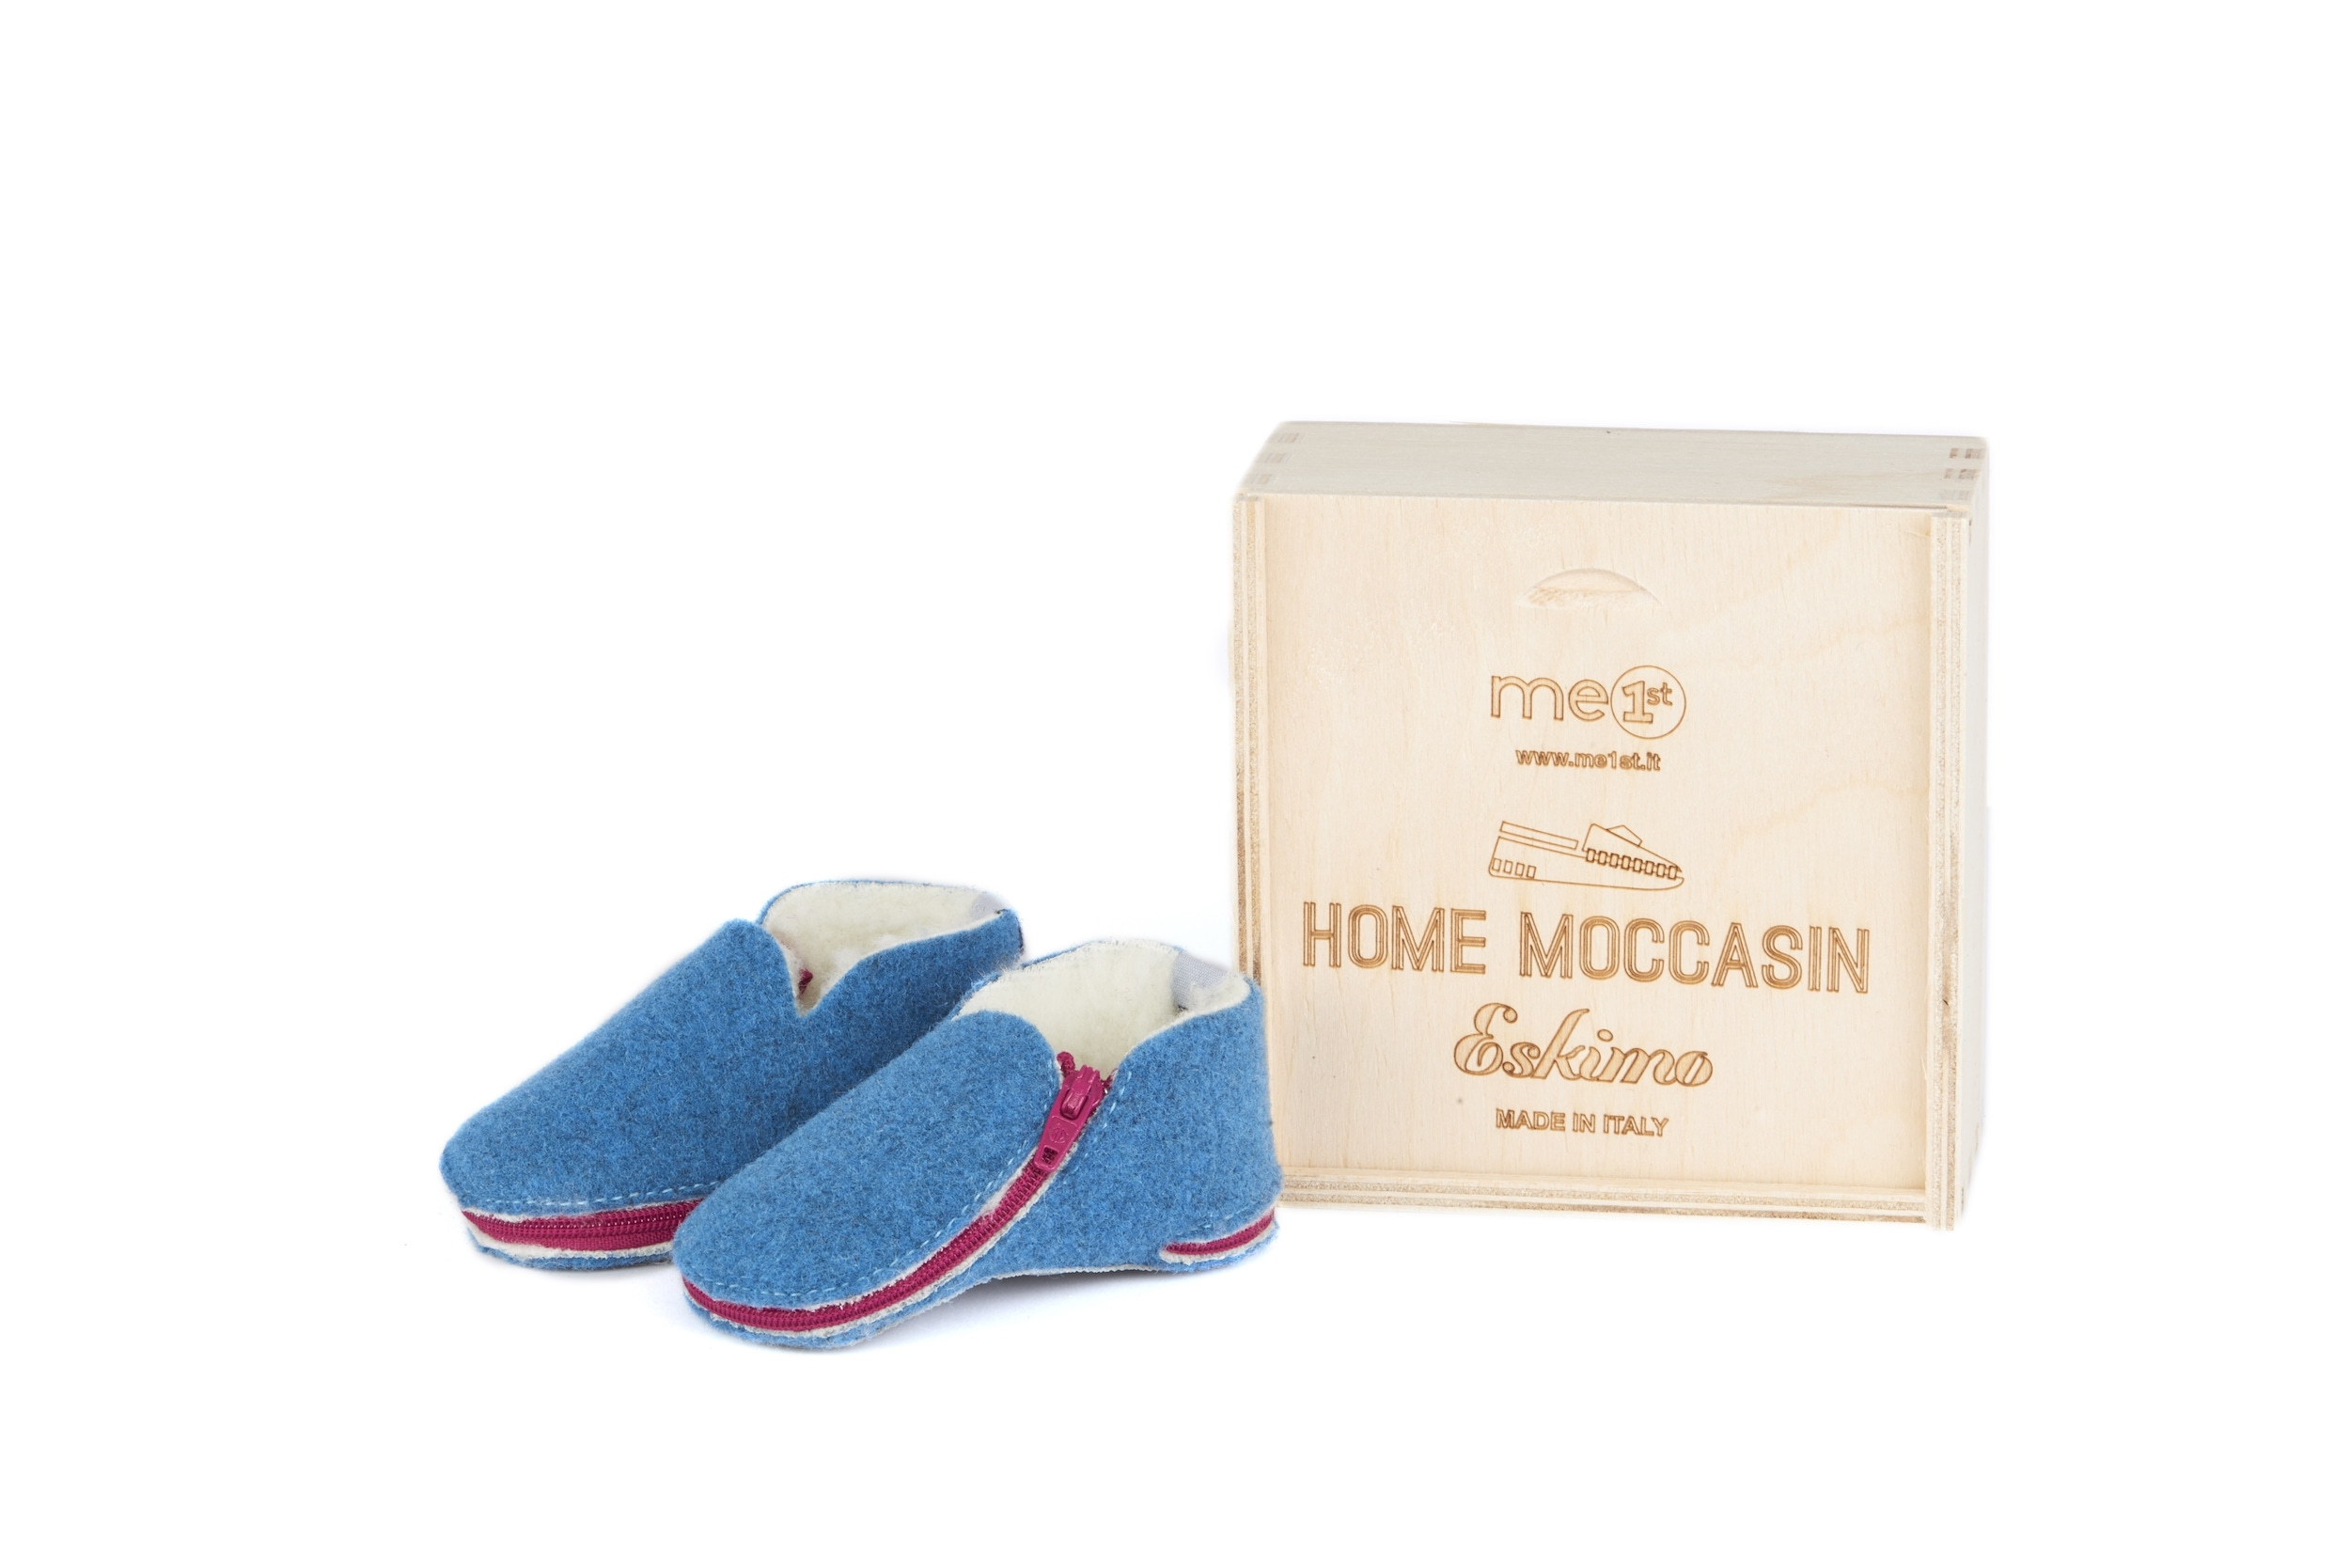 Home Moccasin Eskimino